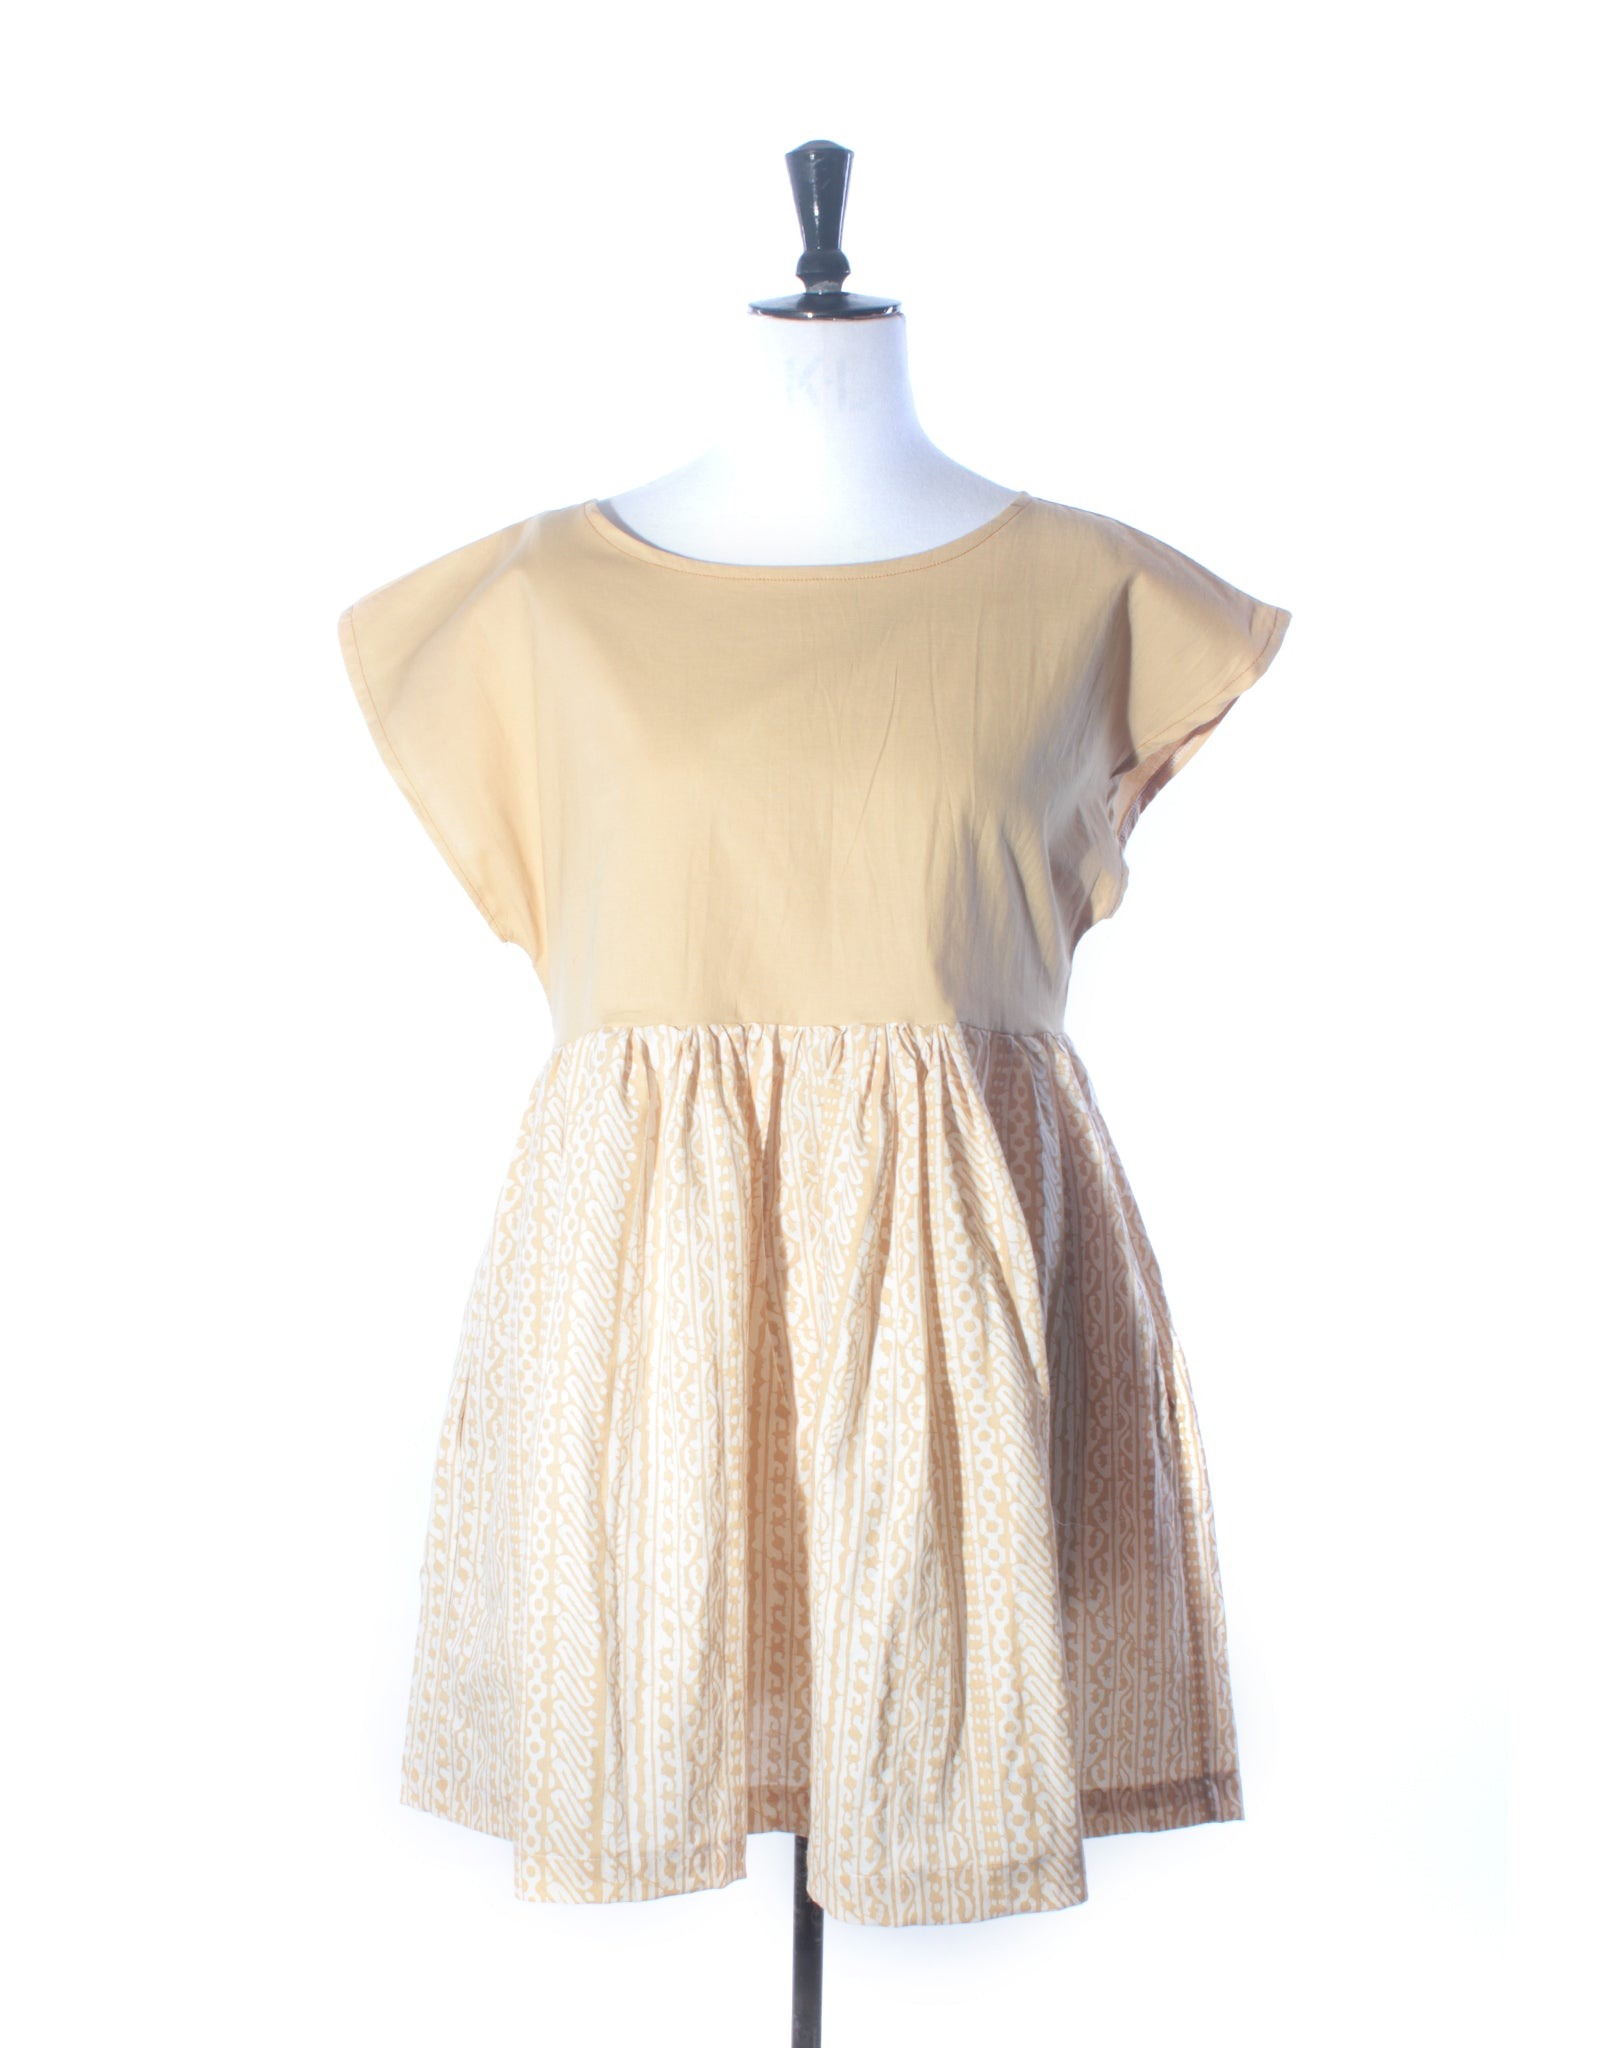 Pale Mustard Cotton Squiggle Collector Dress - Size S